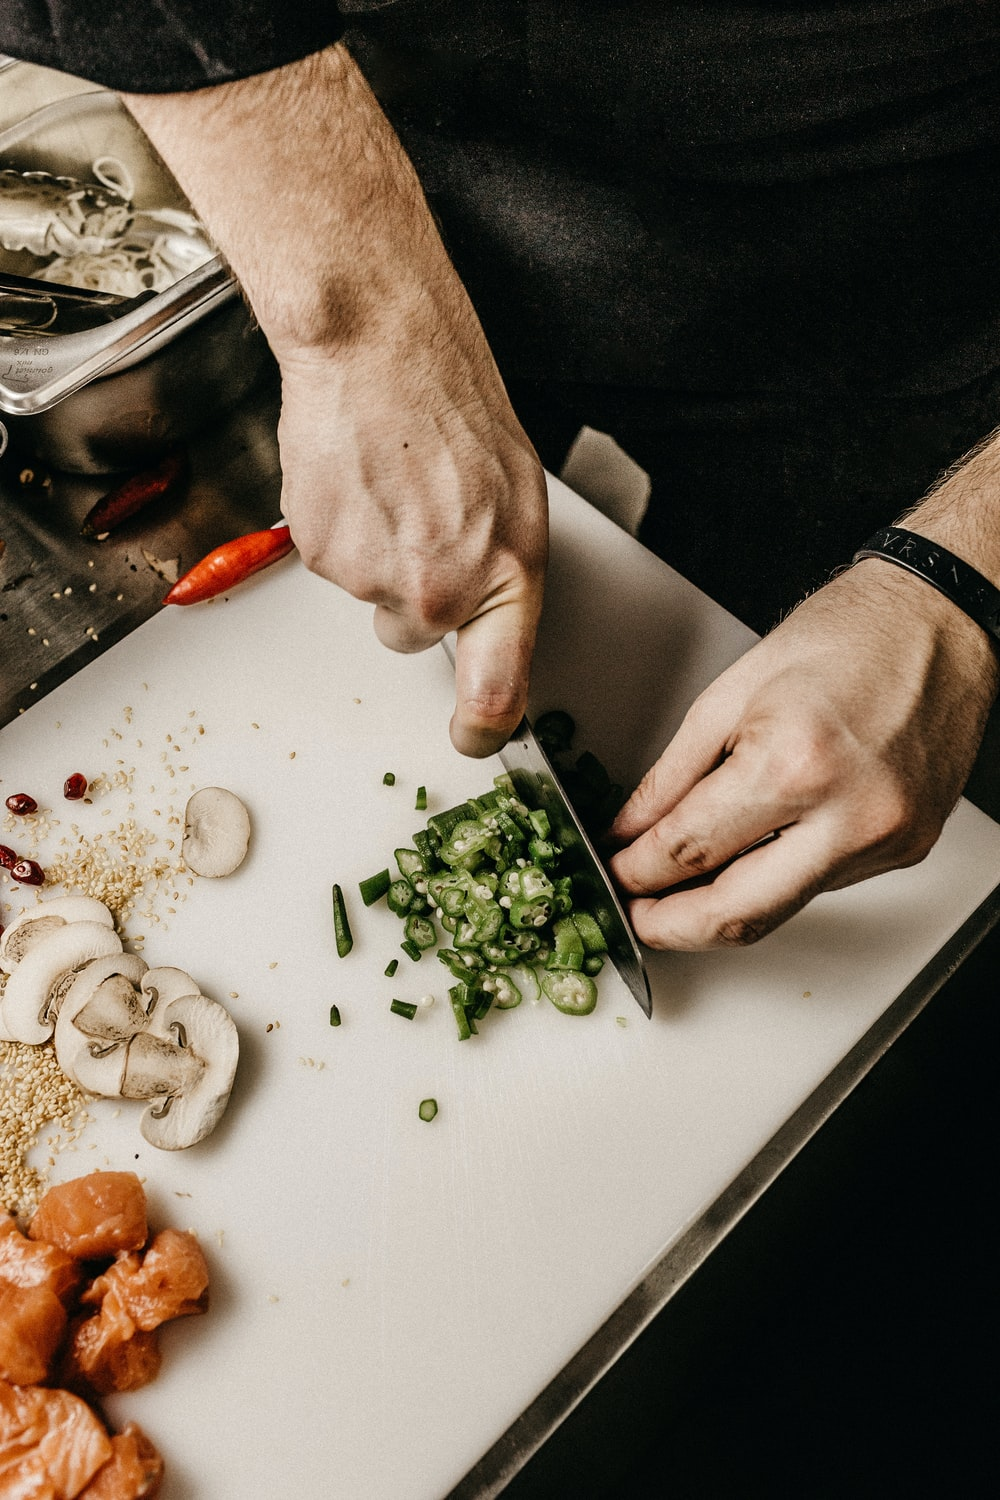 500+ Chef Pictures [HD] | Download Free Images on Unsplash